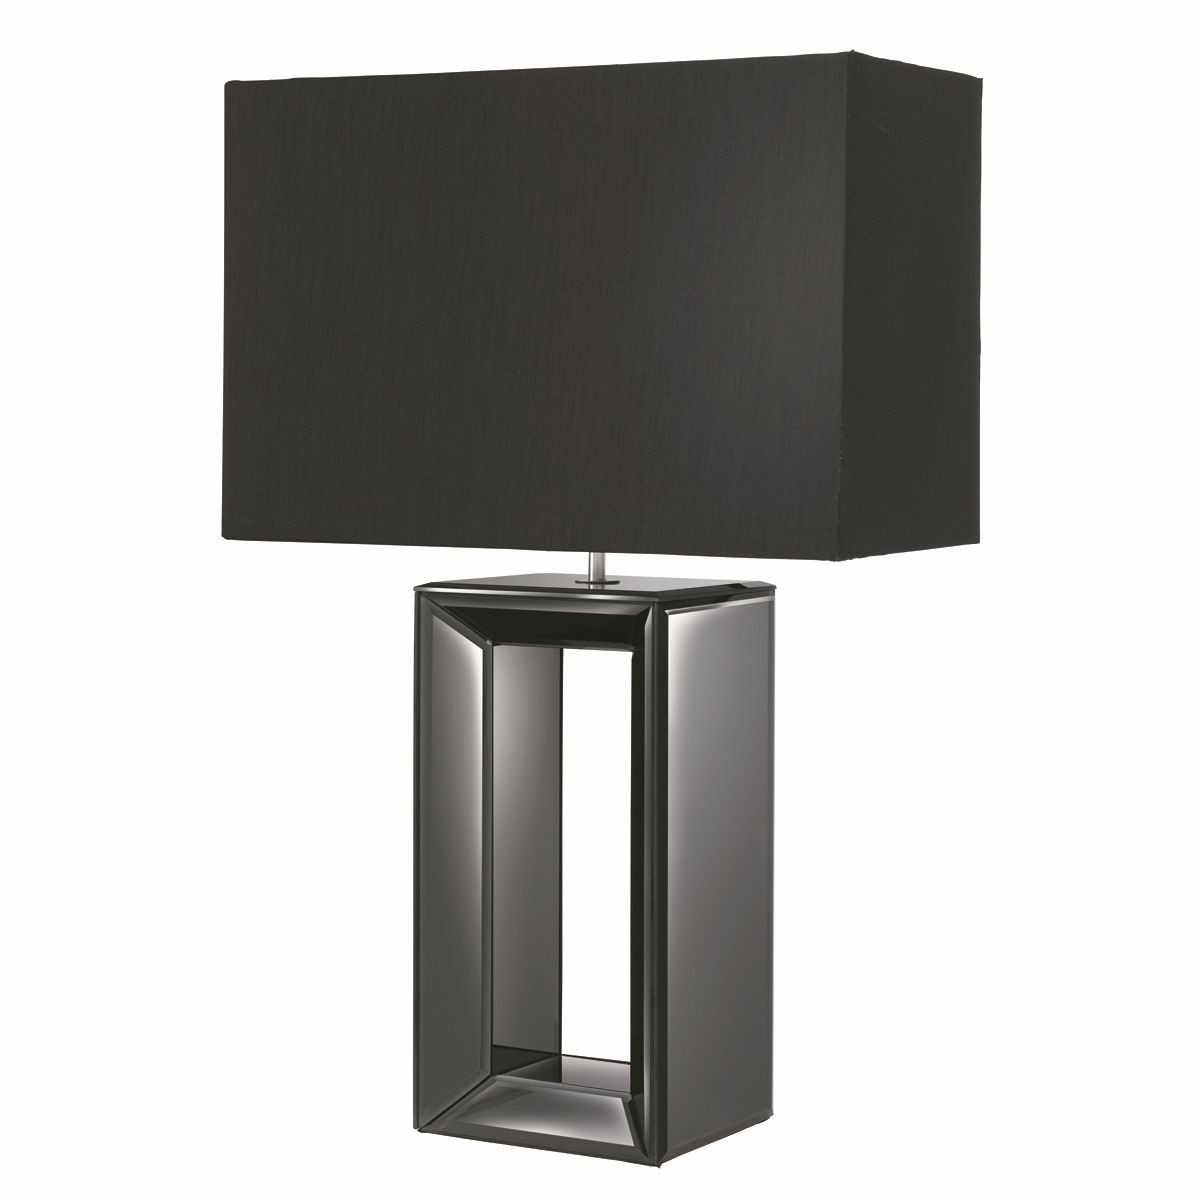 Reflection Table Lamp Tall Black